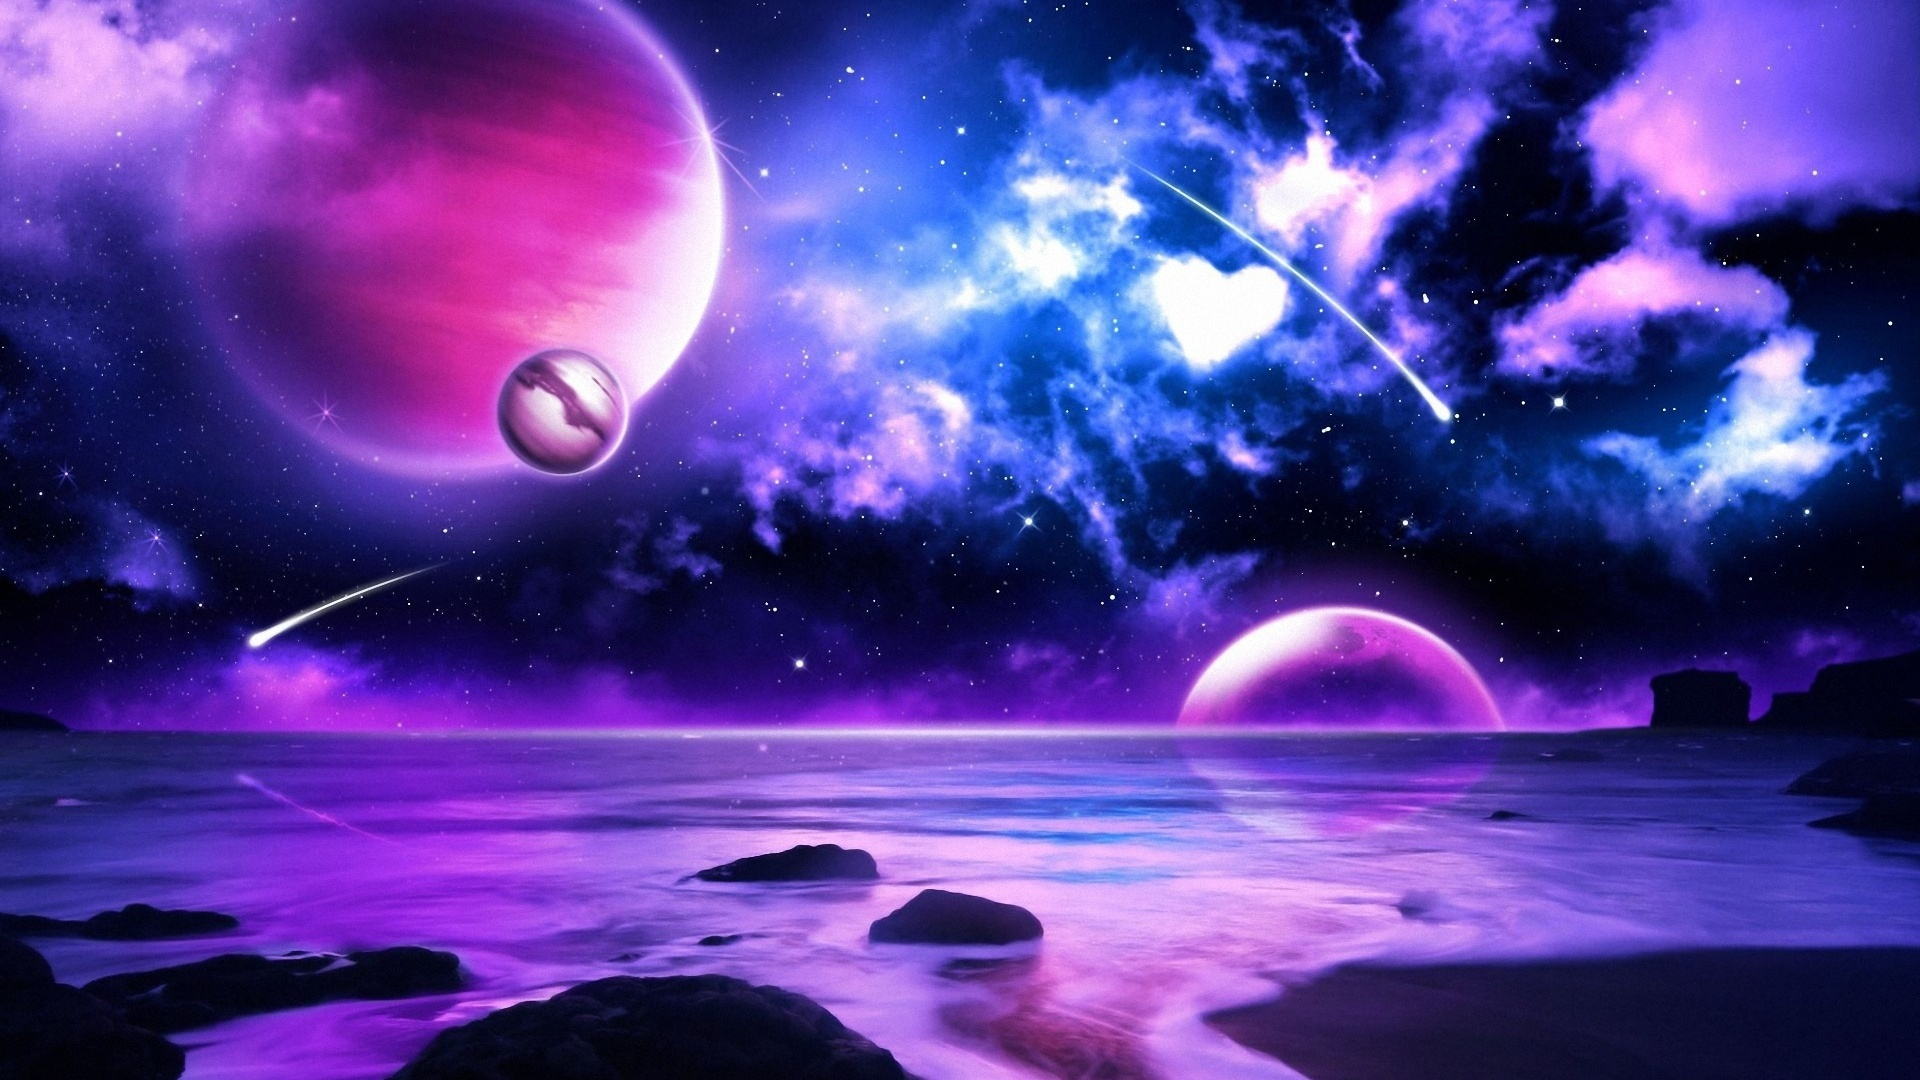 Purple space wallpaper universe and all planets pictures - Purple space wallpaper ...